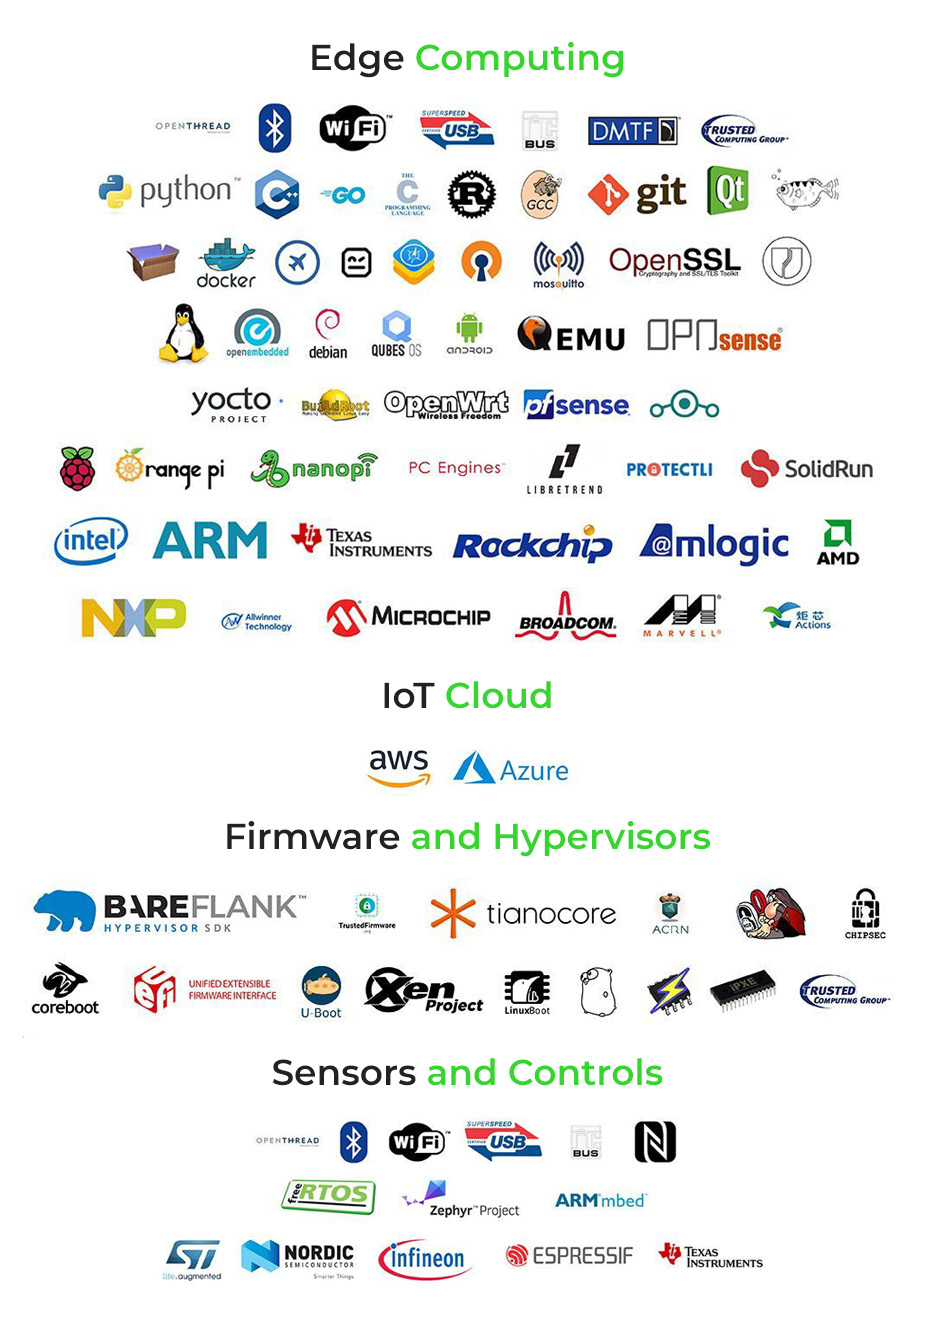 where is 3mdeb: edge computing, IoT Cloud, Firmware and Hypervisors, Sensons and Controls. openthread, bluetooth, usb, bus, dmtf, trusted computing group, python, c++, go, c, gcc, git, qt, docker, robotframe, openssl, swupdate, linux, openembedded, debian, qubes os, android, qemu, opnsense, openvpn, yocto project, buildroot, openwrt, pfsense, raspberry pi, orange pi, nanopi, pc engines, libretrend, protectli, solidrun, intel, arm, texas instruments, rockchip, amlogic, amd, nxp, allwinner technology, microchip, broadcom, marvell, aws, azure, bareflank, tianocore, linuxboot, uboot, espressif, texas instrumentals, infineon, nordic, rtos, armmbed, zephyr